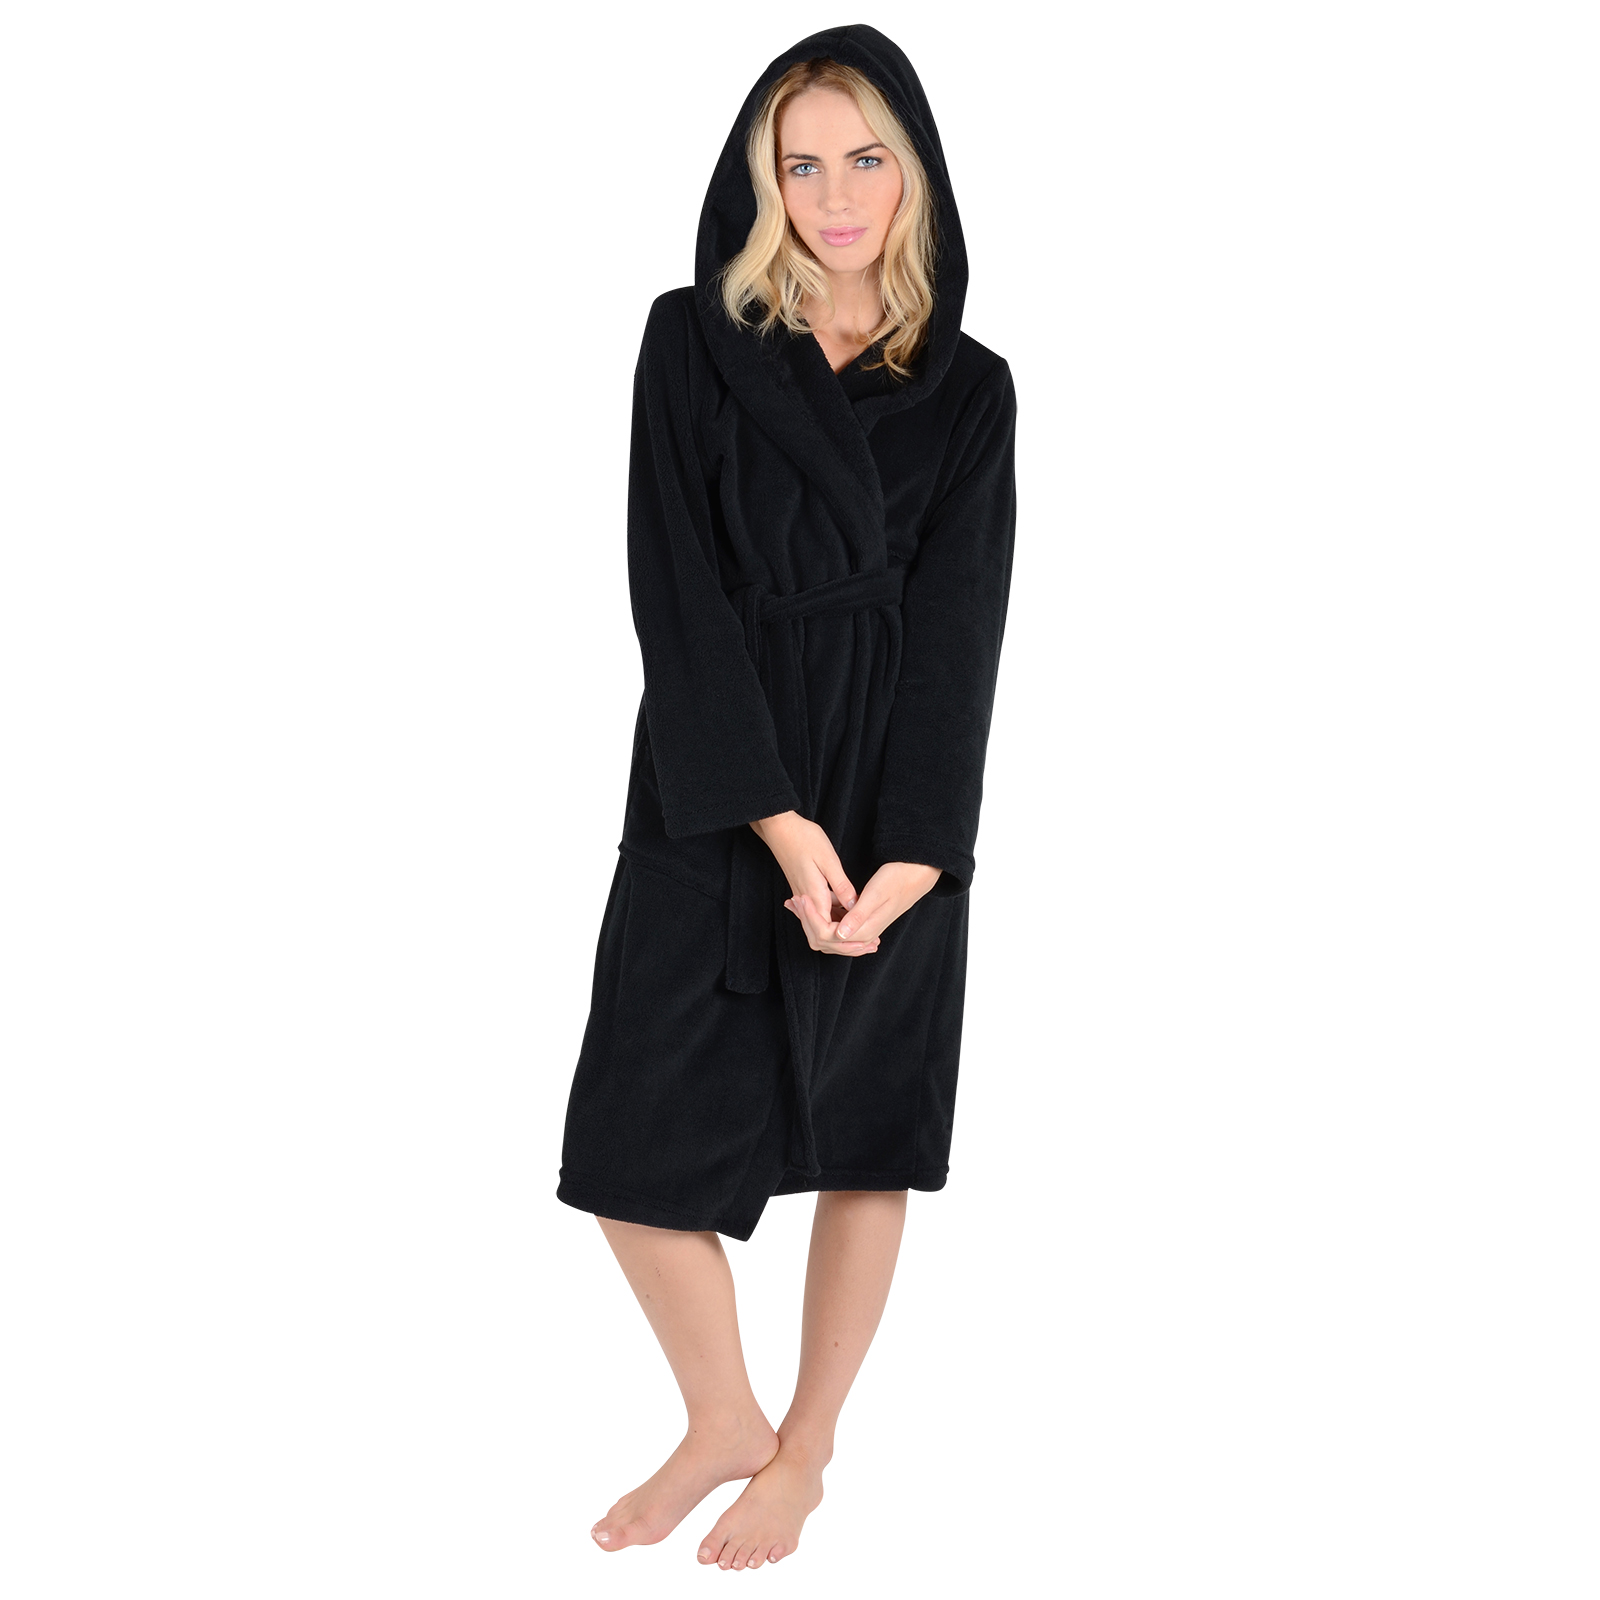 Womens Black Super Soft Fleece Hooded Bath Robe Dressing Gown Wrap ...